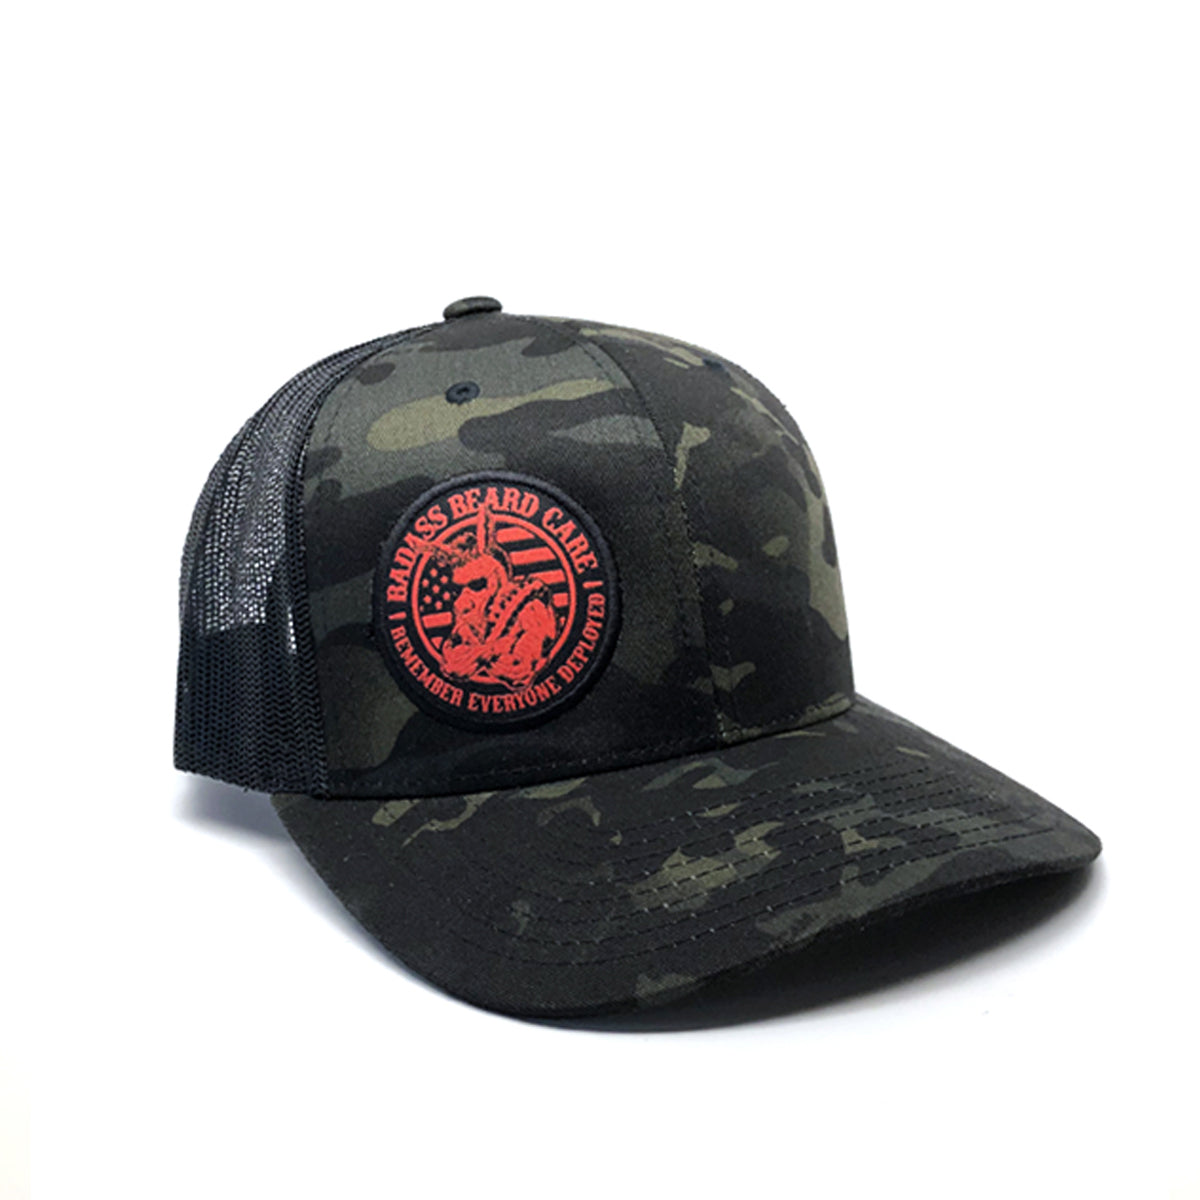 Remember Everyone Deployed Trucker Hat